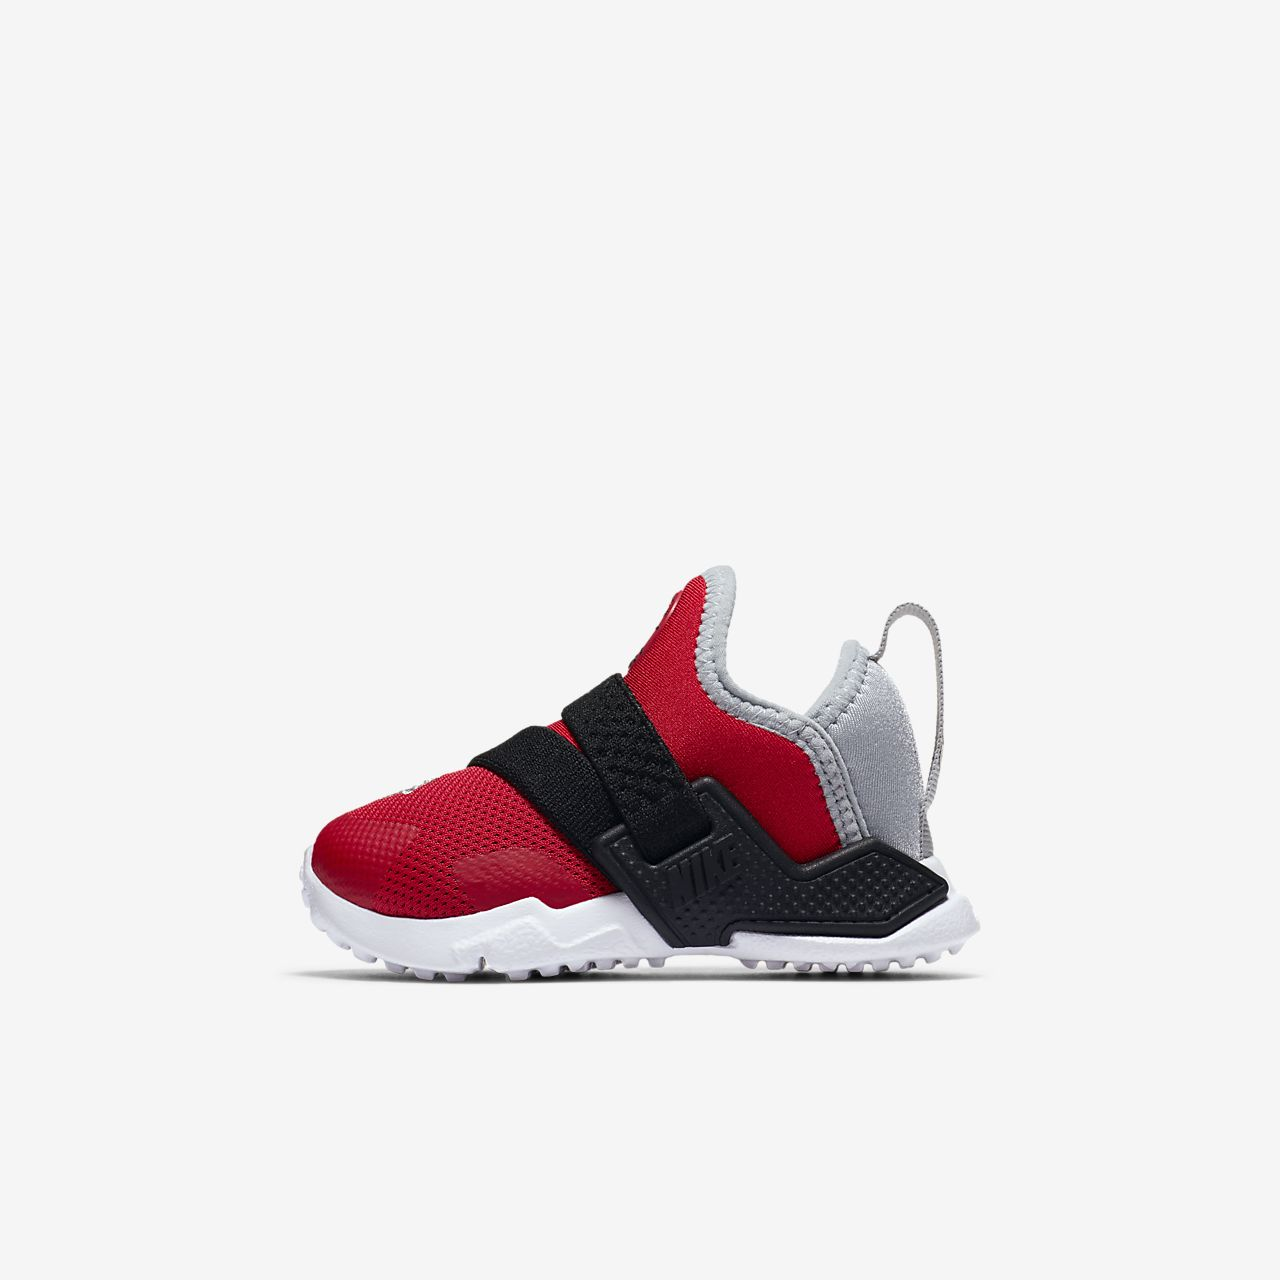 Nike Huarache Extreme Infant/Toddler Shoe